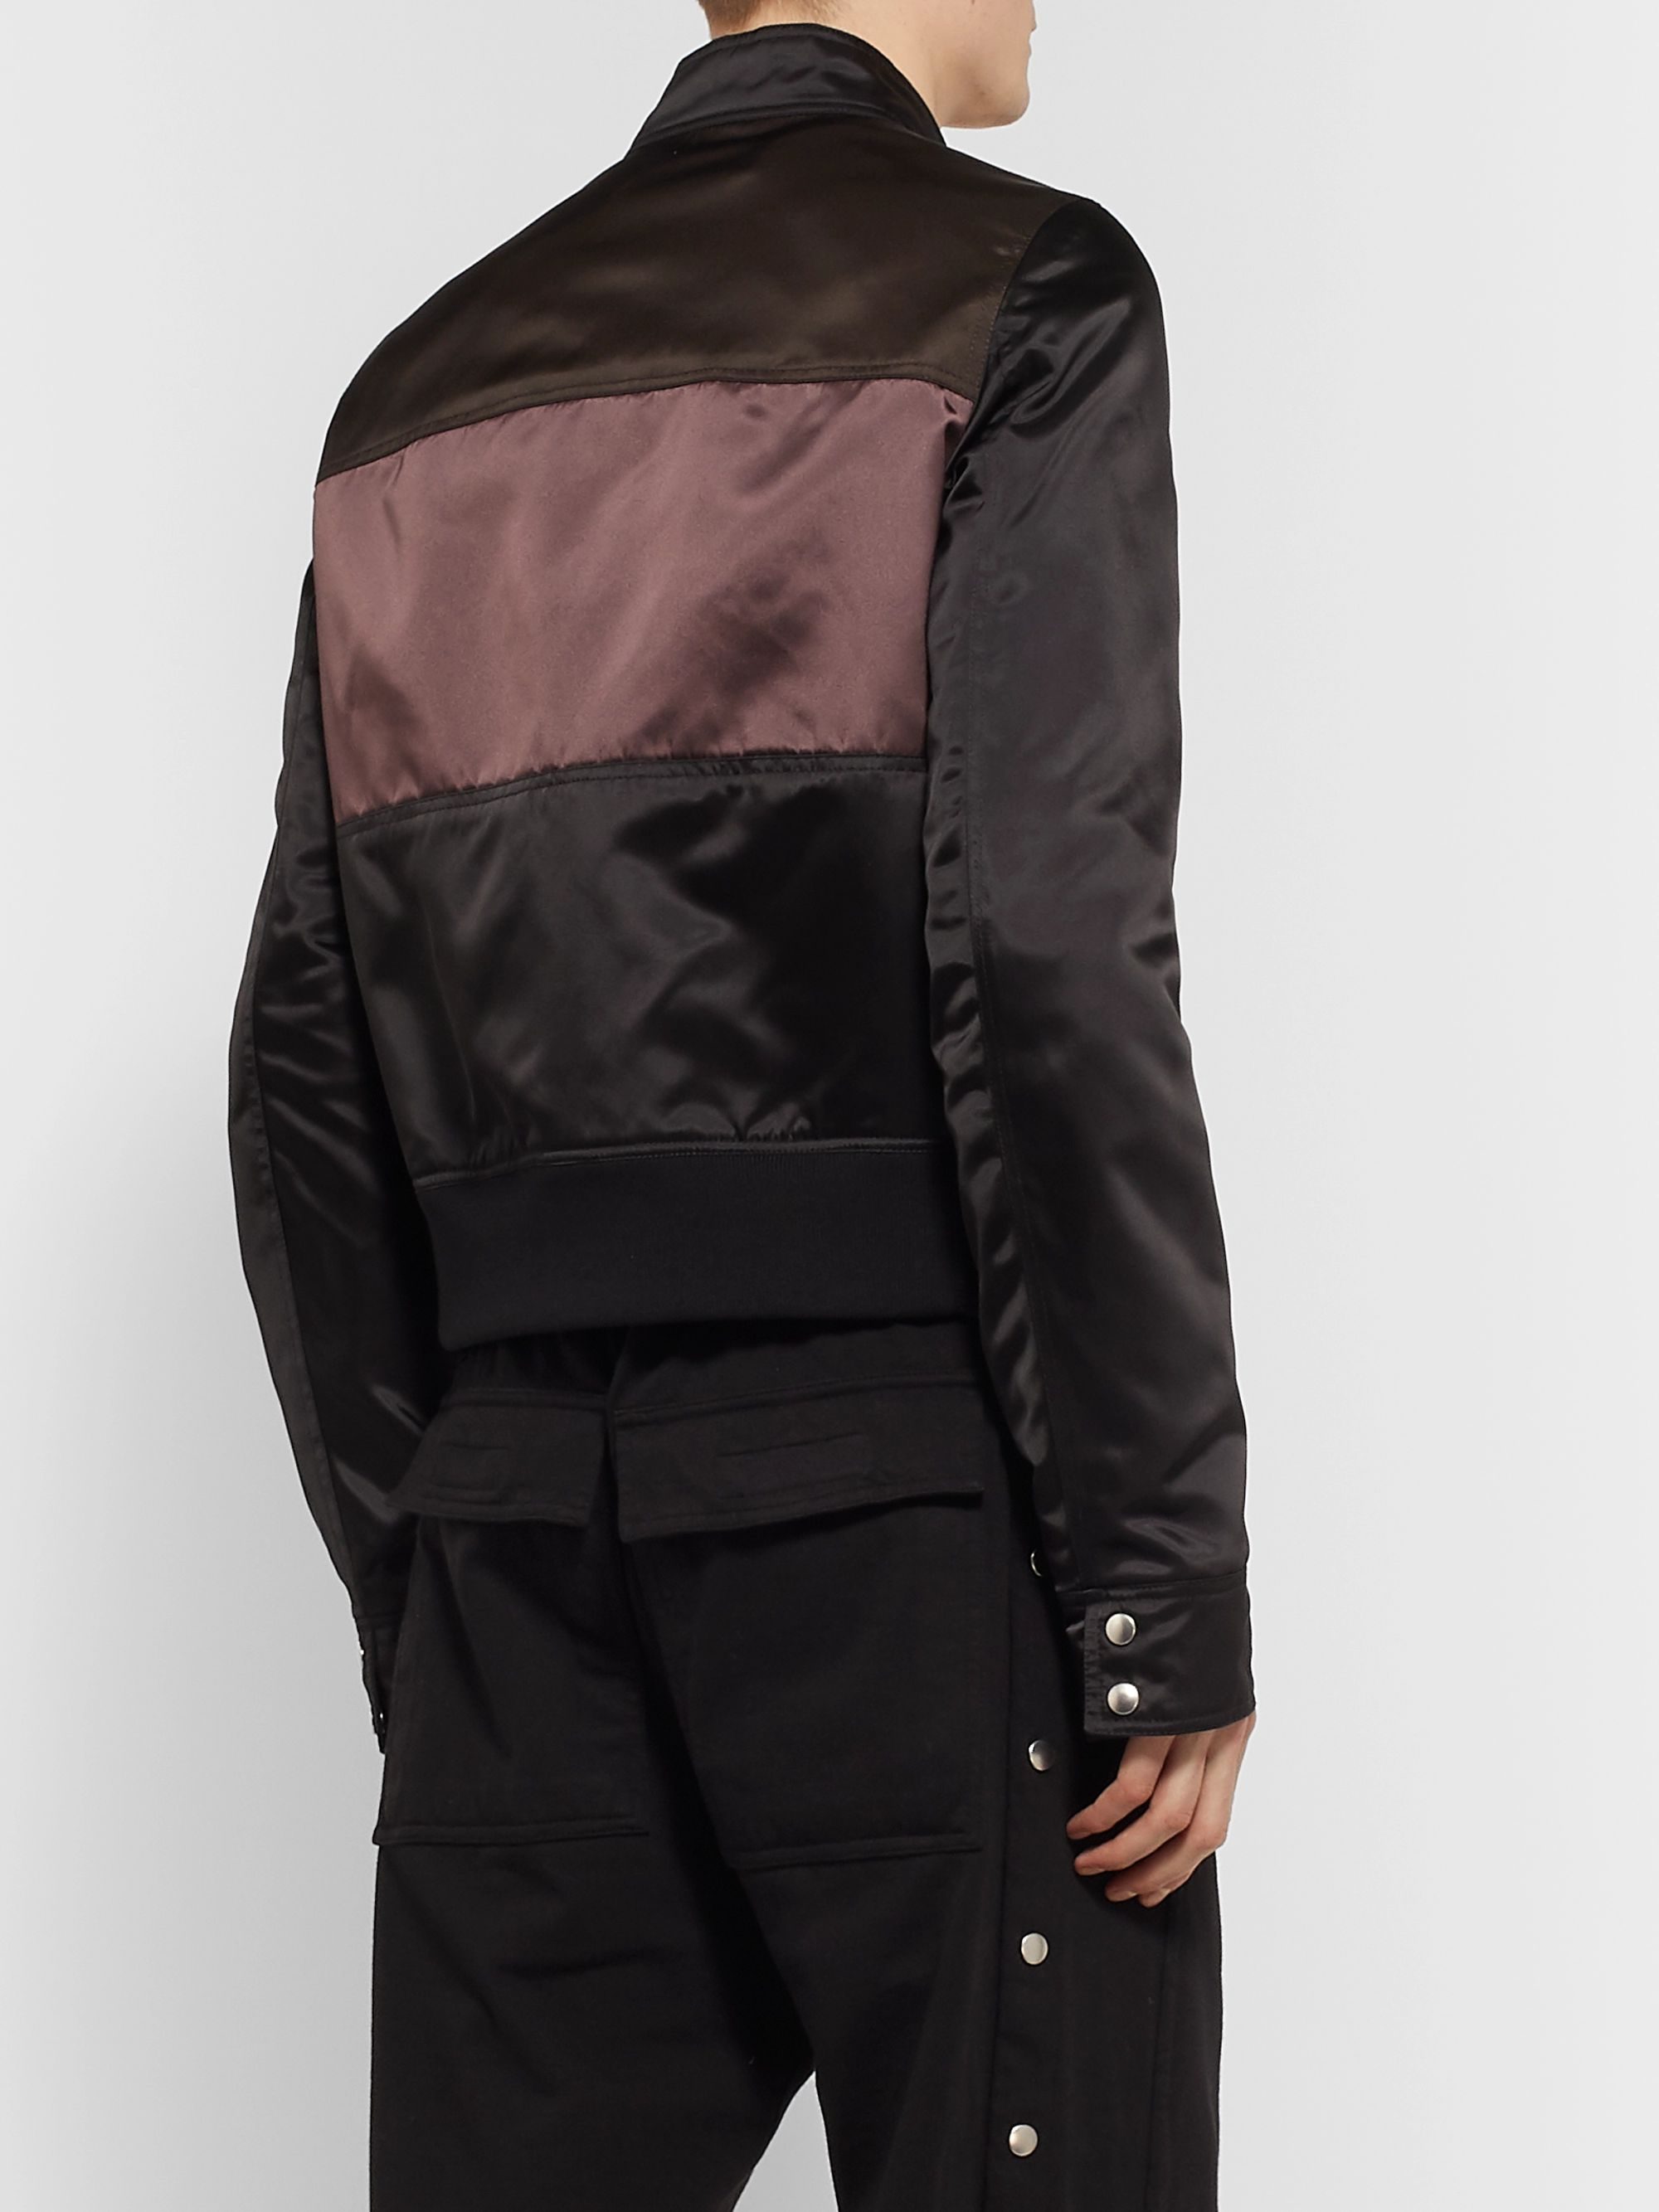 Rick Owens Slim-Fit Panelled Nylon Bomber Jacket